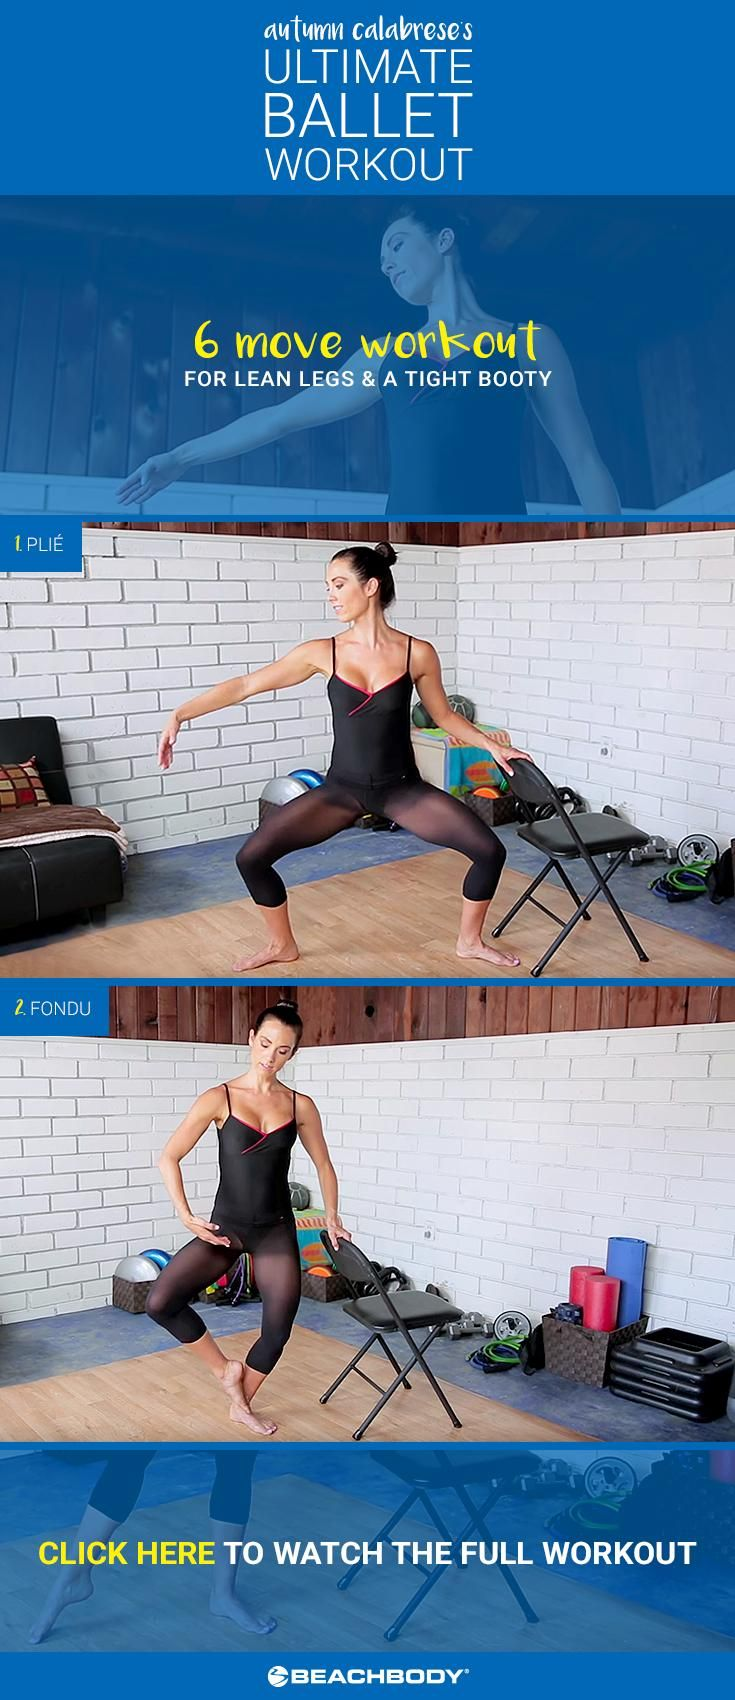 Autumn Calabreses Ultimate Ballet Workout Fitness Tips